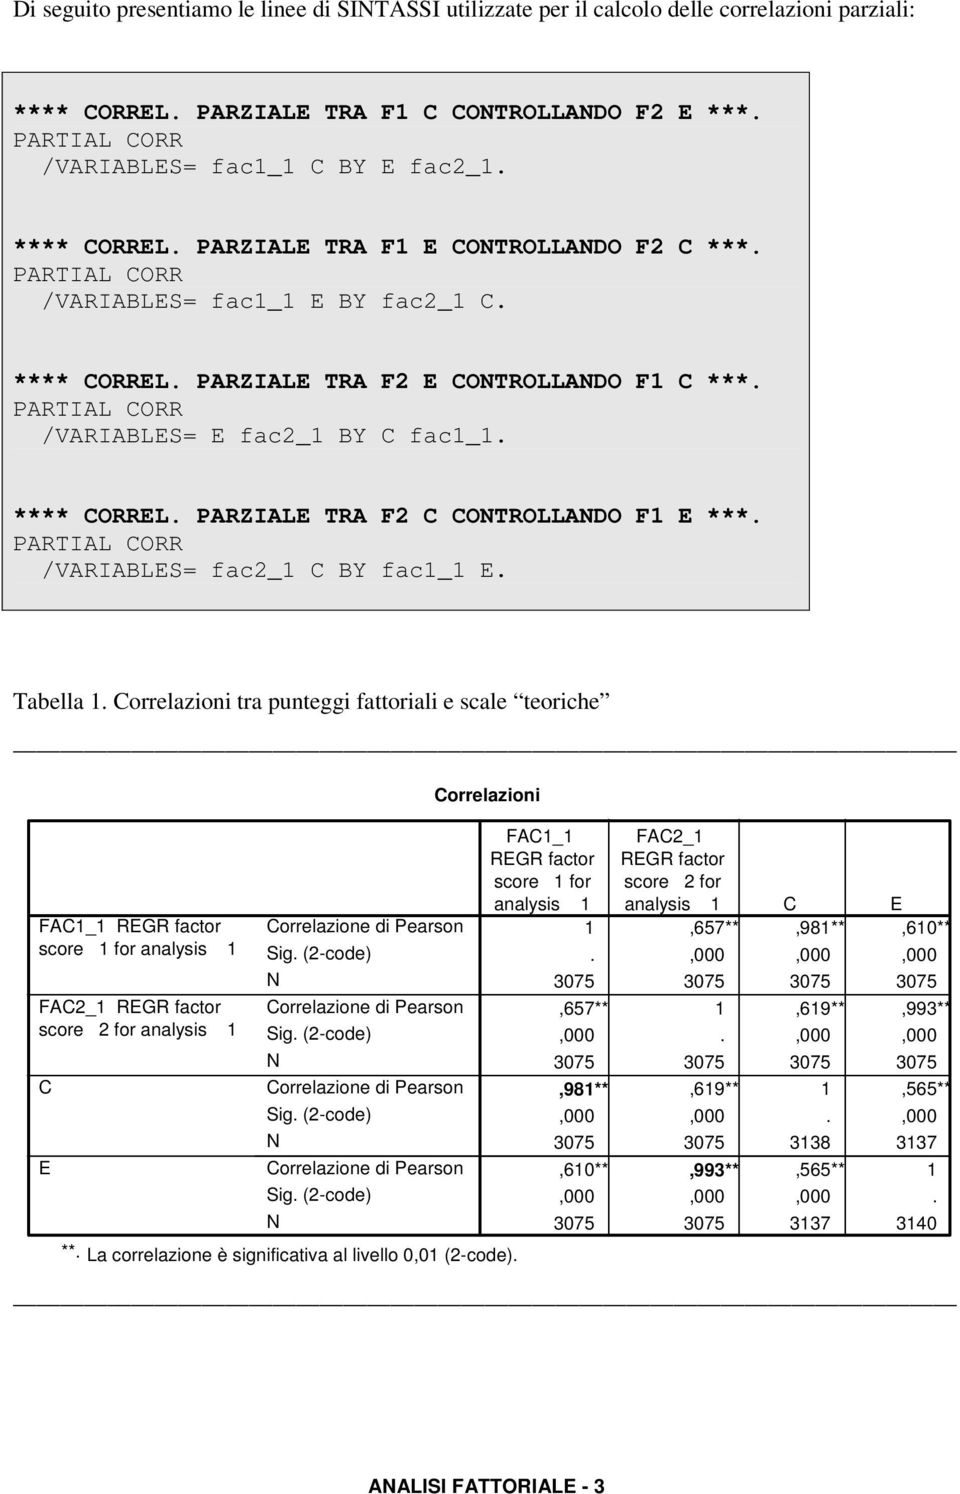 PARTIAL CORR /VARIABLES= E fac2_1 BY C fac1_1. **** CORREL. PARZIALE TRA F2 C CONTROLLANDO F1 E ***. PARTIAL CORR /VARIABLES= fac2_1 C BY fac1_1 E. Tabella 1.